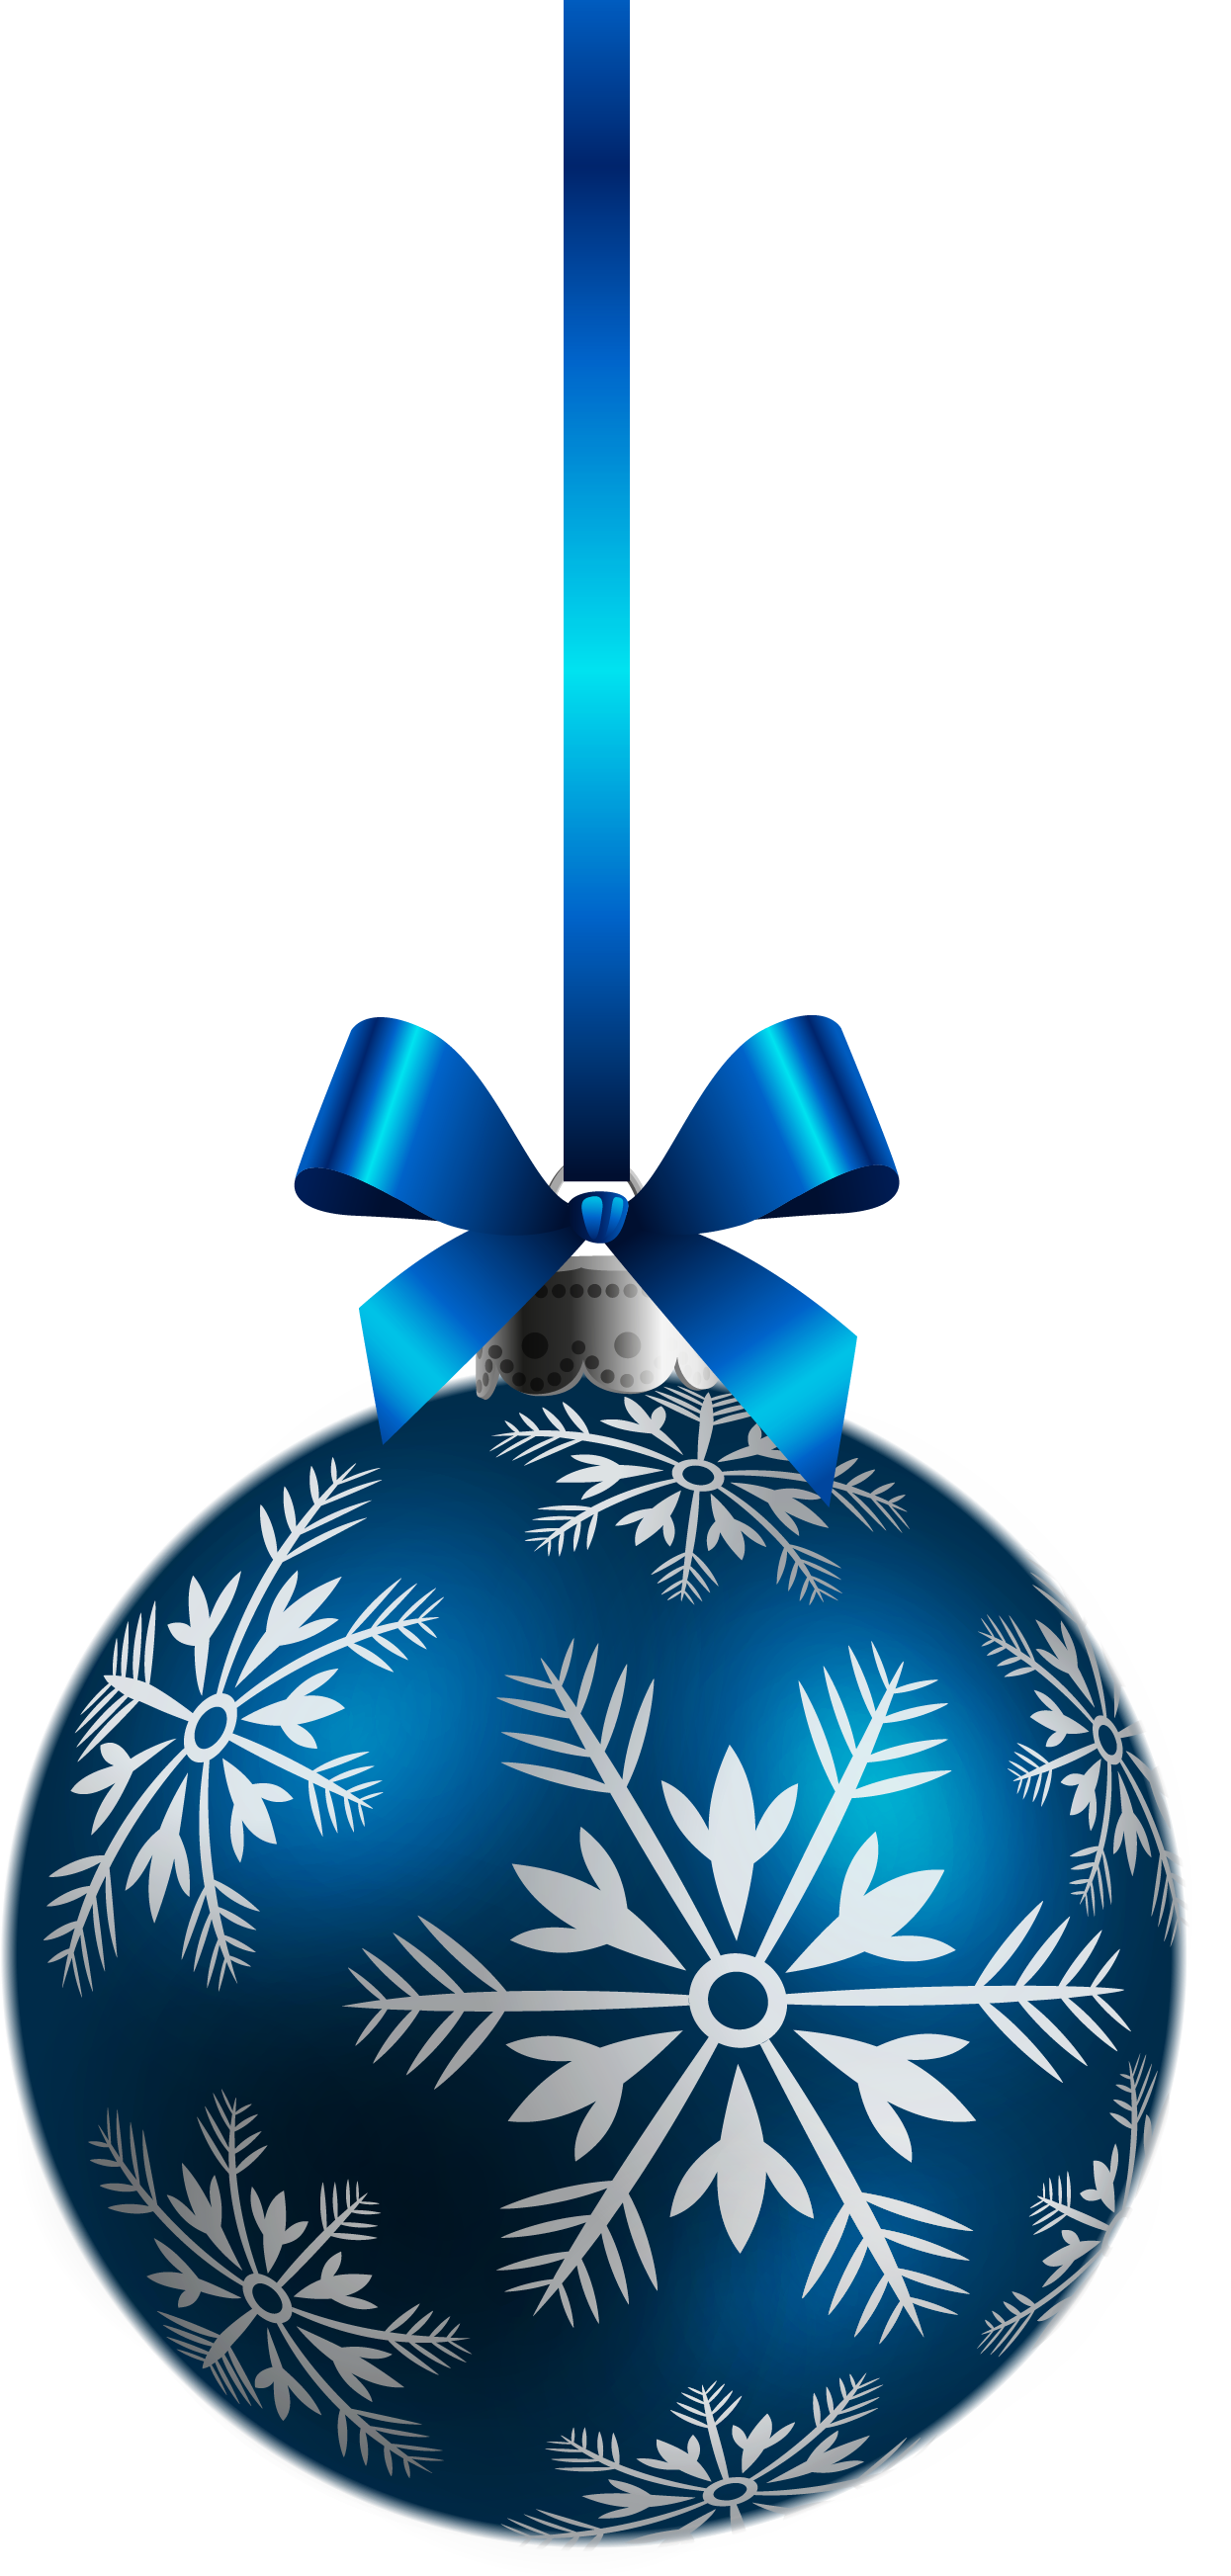 Ornament clipart file. Christmas png transparent images